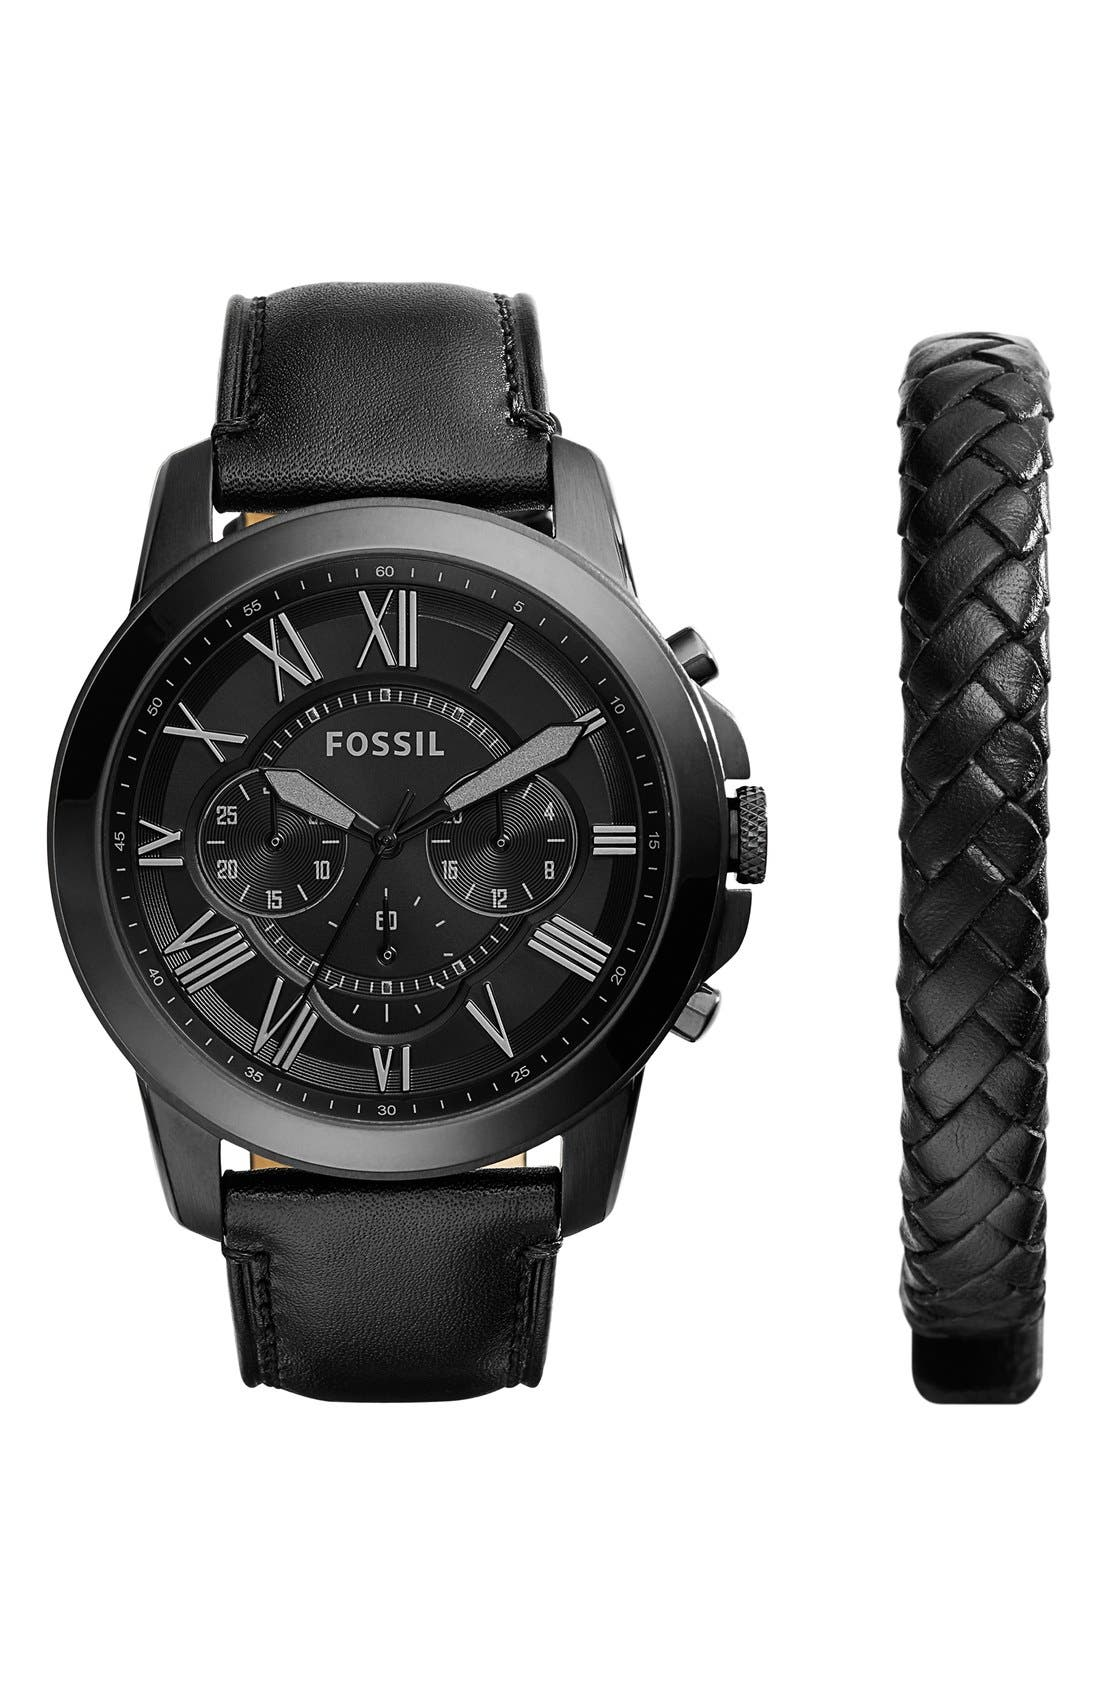 Main Image - Fossil 'Grant' Watch & Leather Strap Set